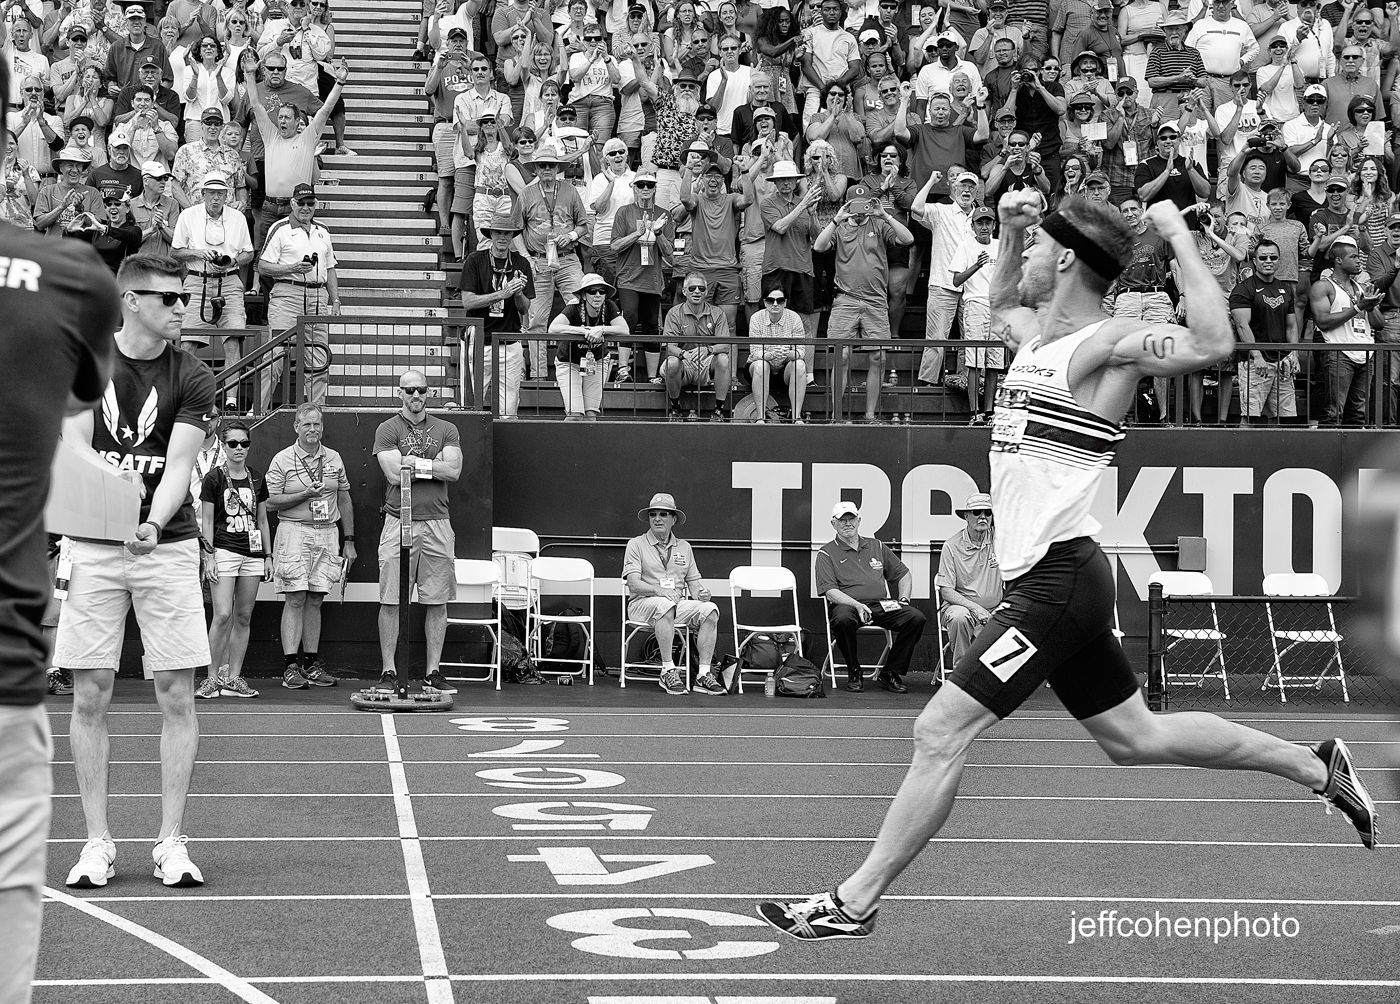 1r2015_usaoutdoors_day_4_nick_symmonds_bw_800m_final_jeff_cohen_0396_web_.jpg